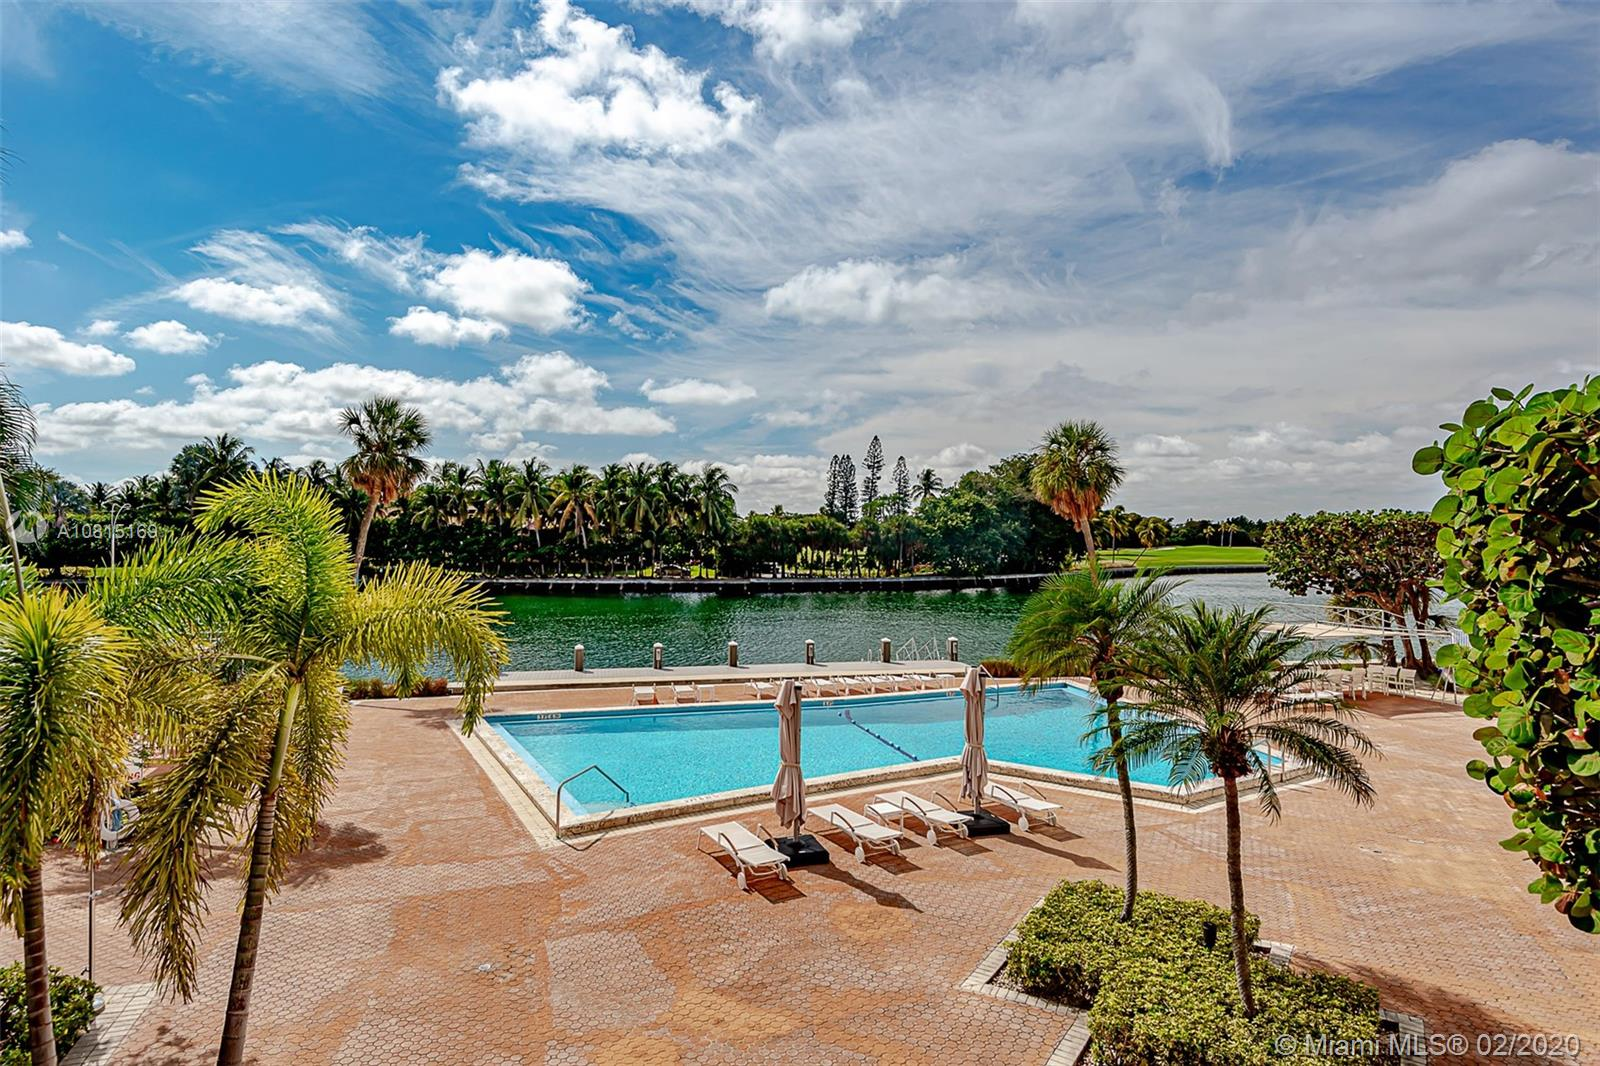 Beautiful 2 bedroom unit in Bay Harbor Islands. FURNITURE INCLUDED !!! Walking distance to best beaches and Bal Harbour Shops. Unit was totally renewed 4 years ago. Incredible views and sunsets to the intercostal. Best price in the building. Easy to show !!!